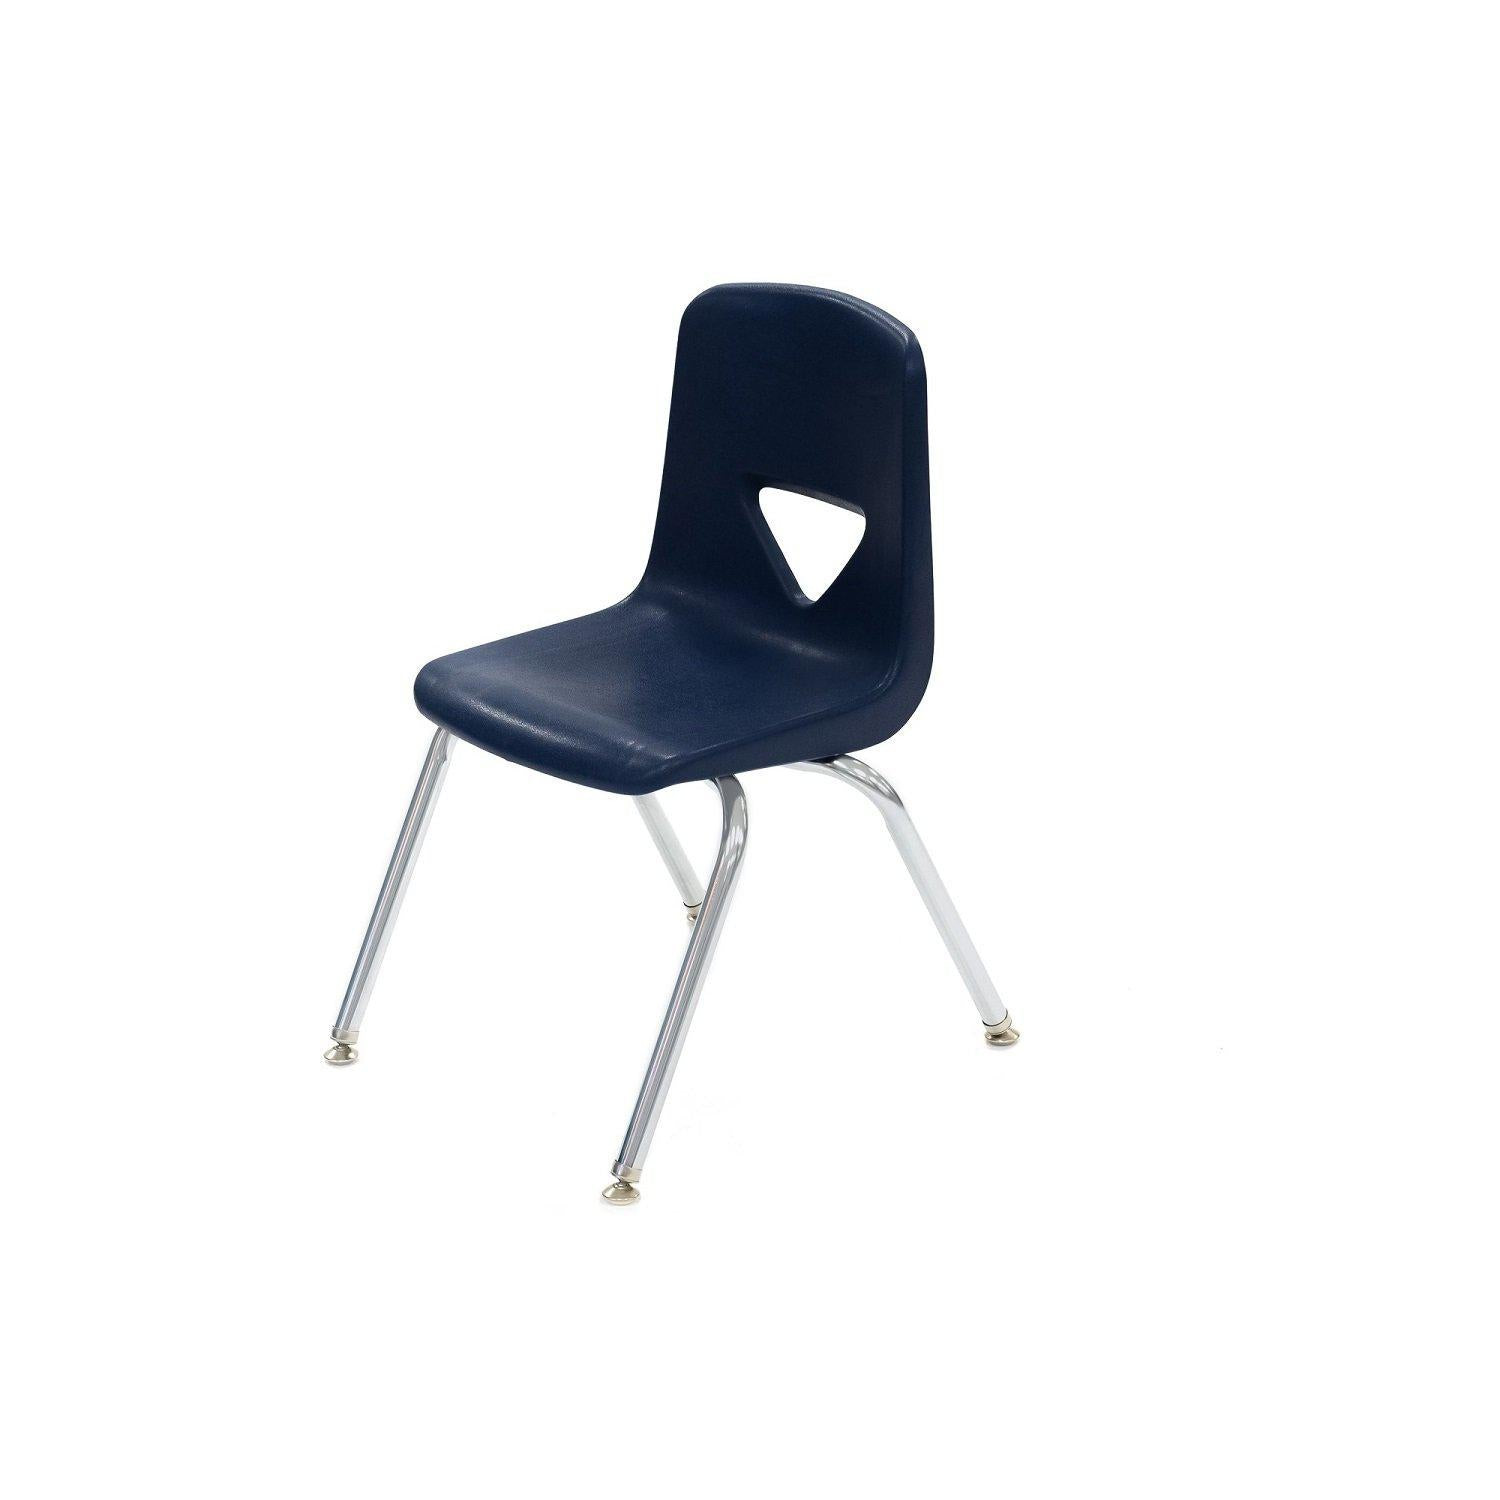 120 Series Stack Chairs, Navy Shell with Chrome Frame - QUICK SHIP